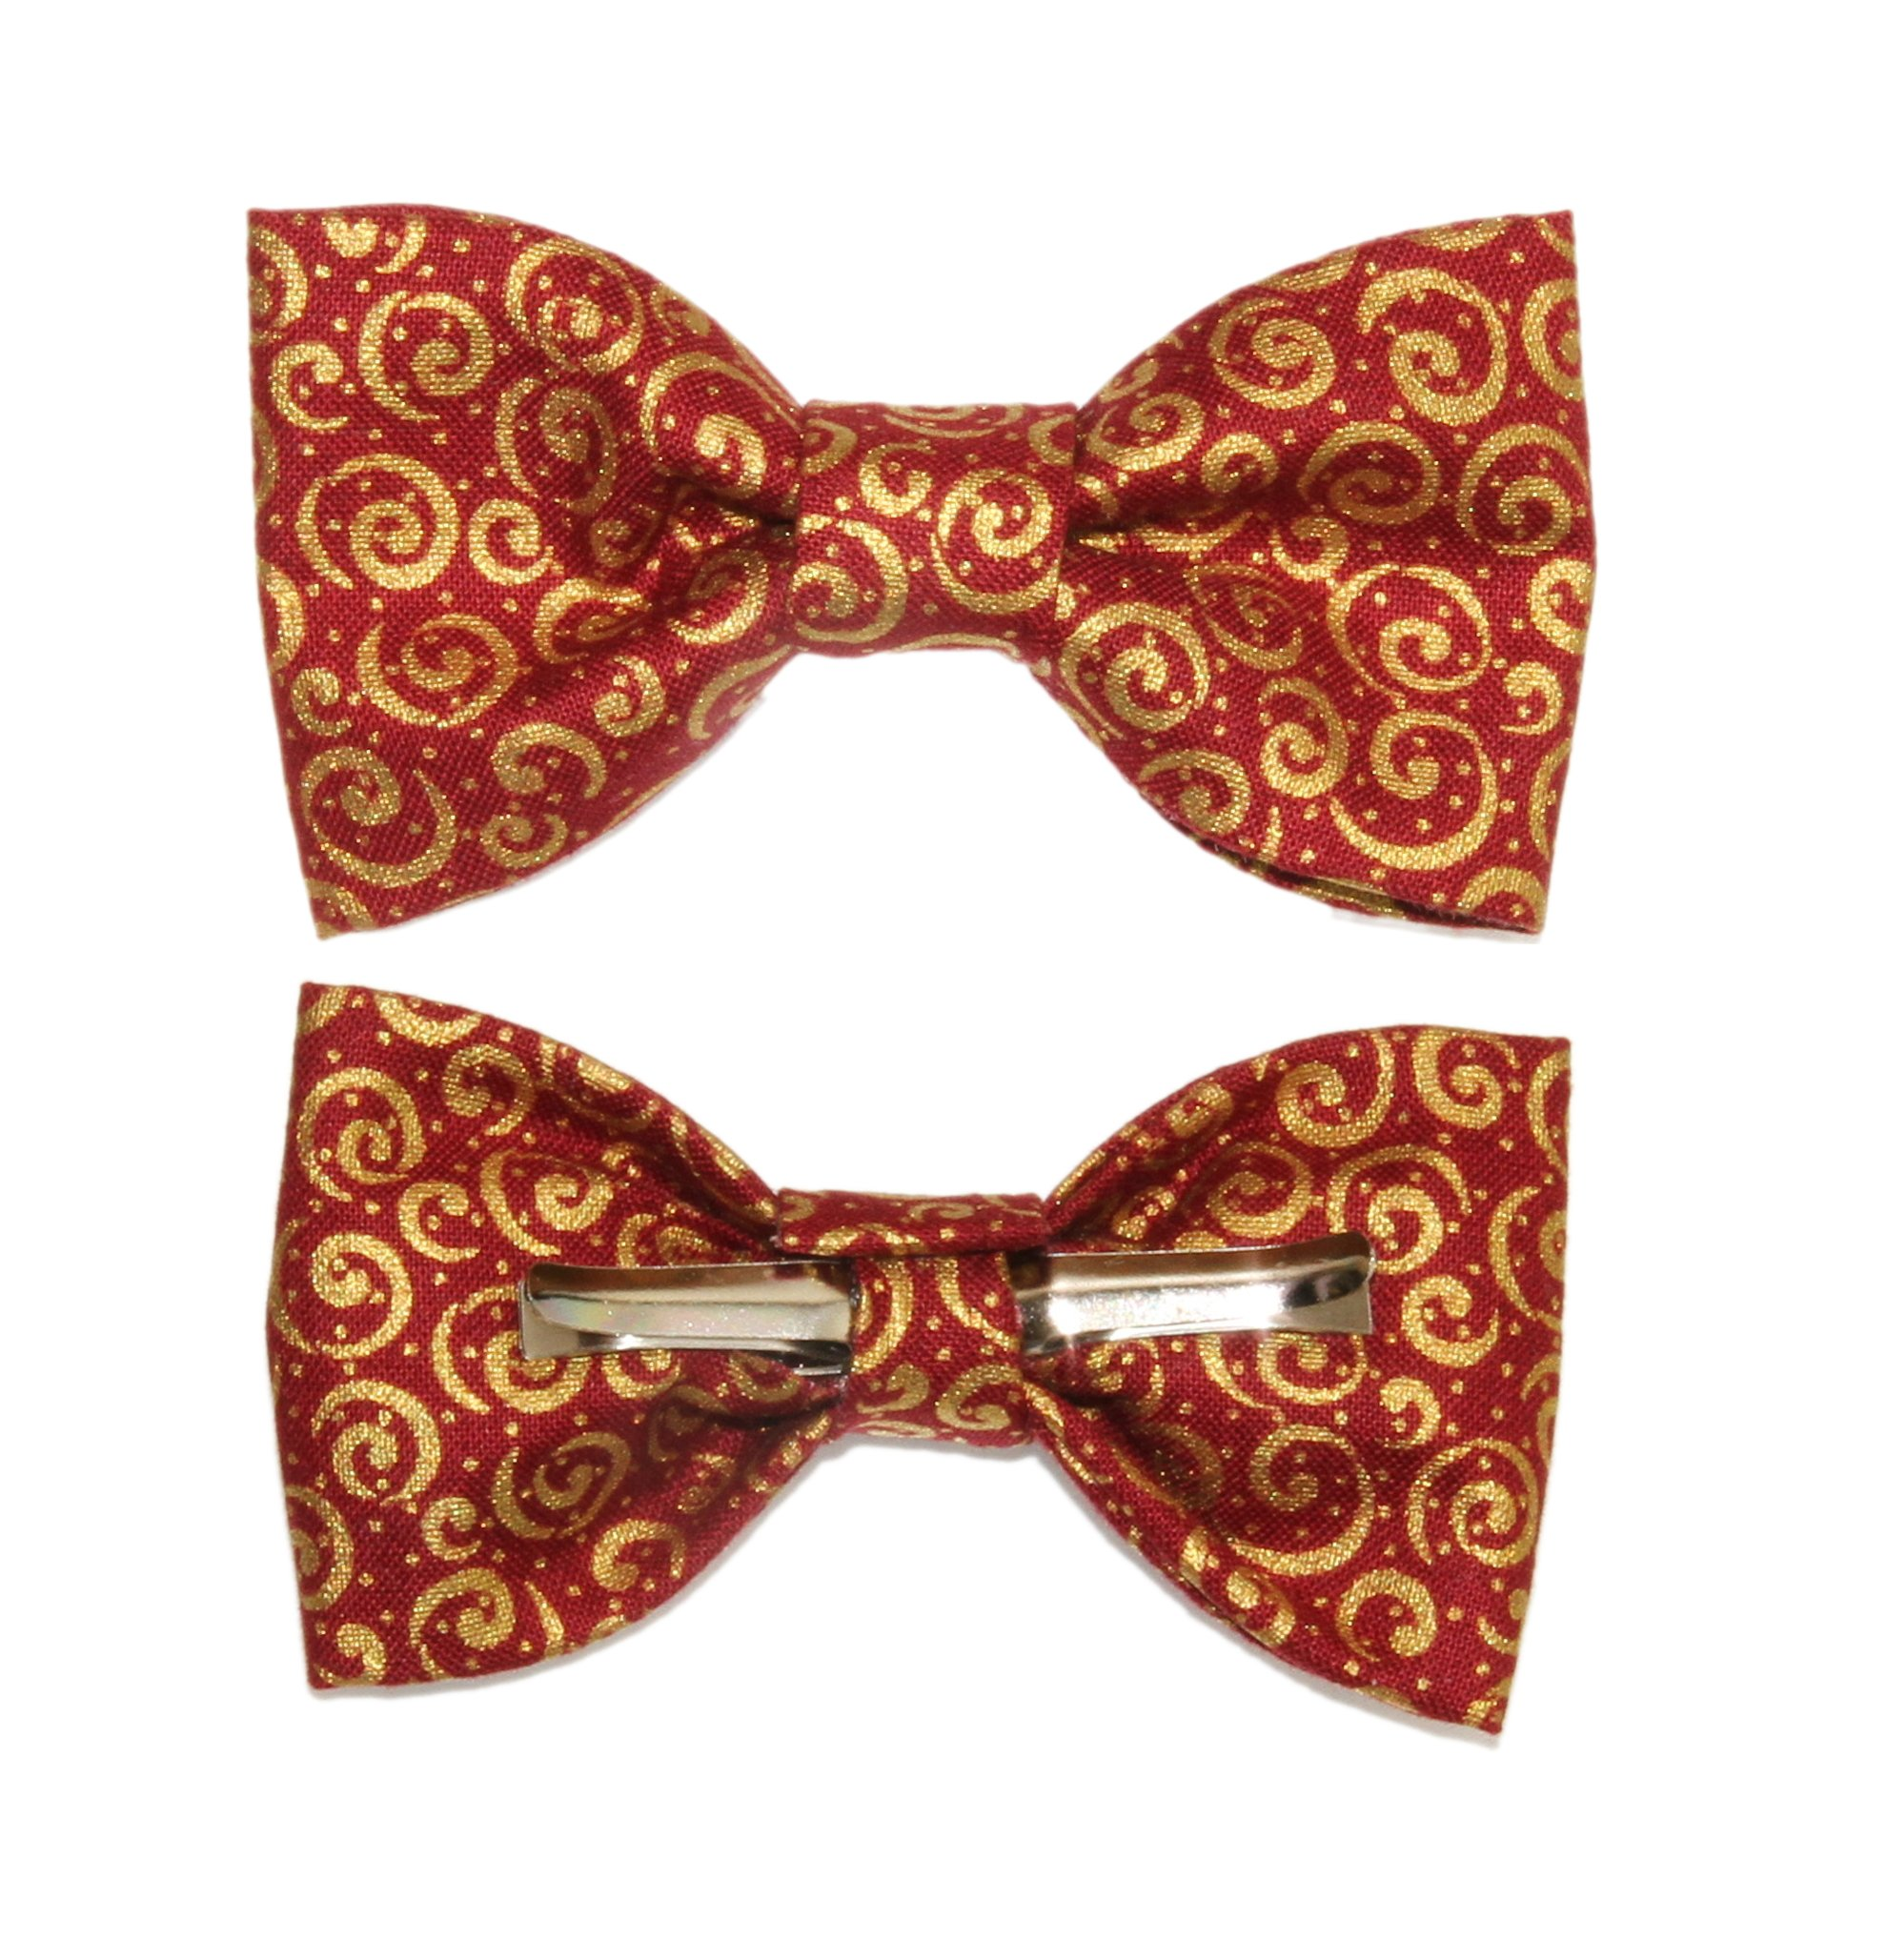 Toddler Boy 4T 5T Wine Red With Gold Scrolls Clip On Cotton Bow Tie Bowtie